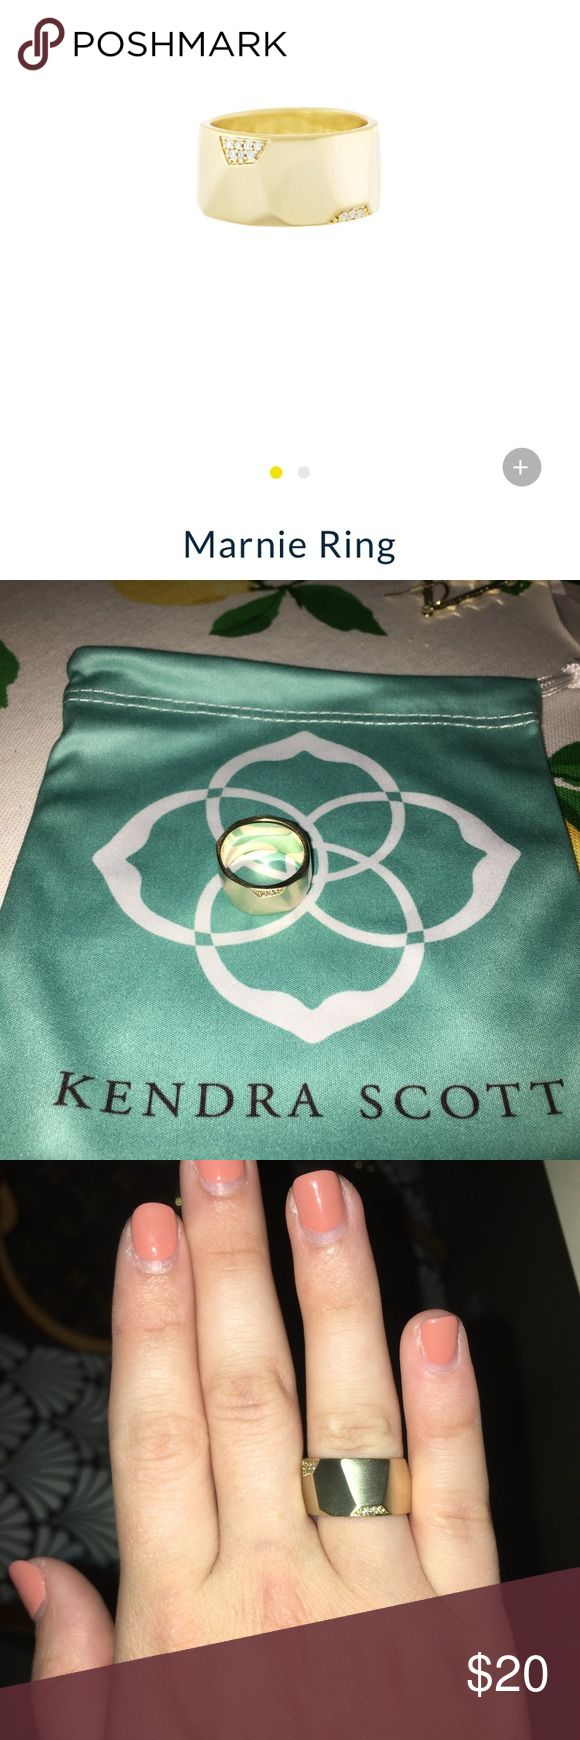 Kendra Scott Marnie Ring, Size 6 Kendra Scott Marnie Ring! Size 6, never worn! Kendra Scott Jewelry Rings